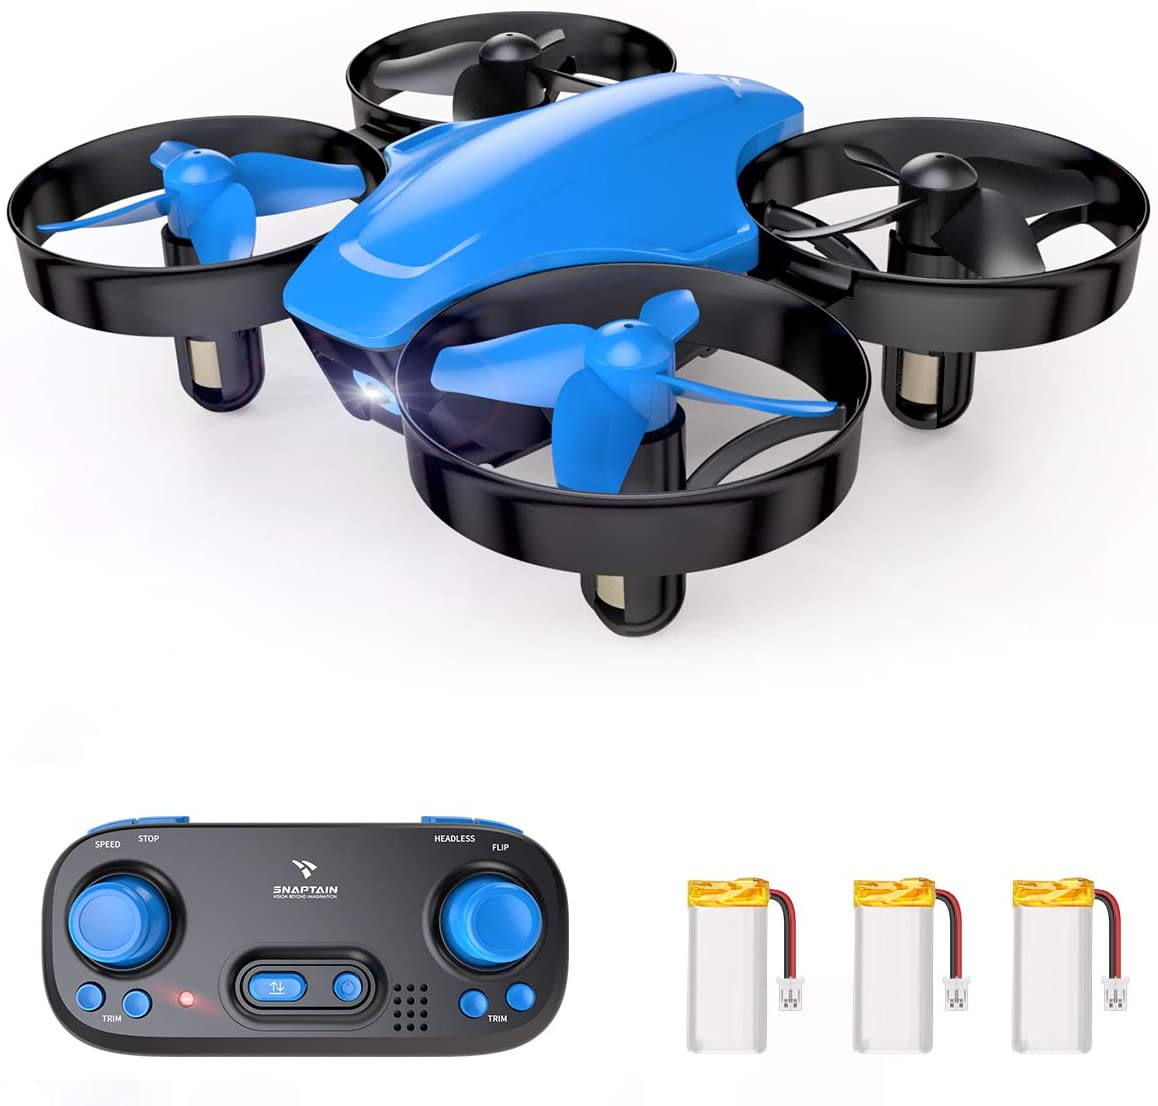 Mini Drone for Kids or Beginners